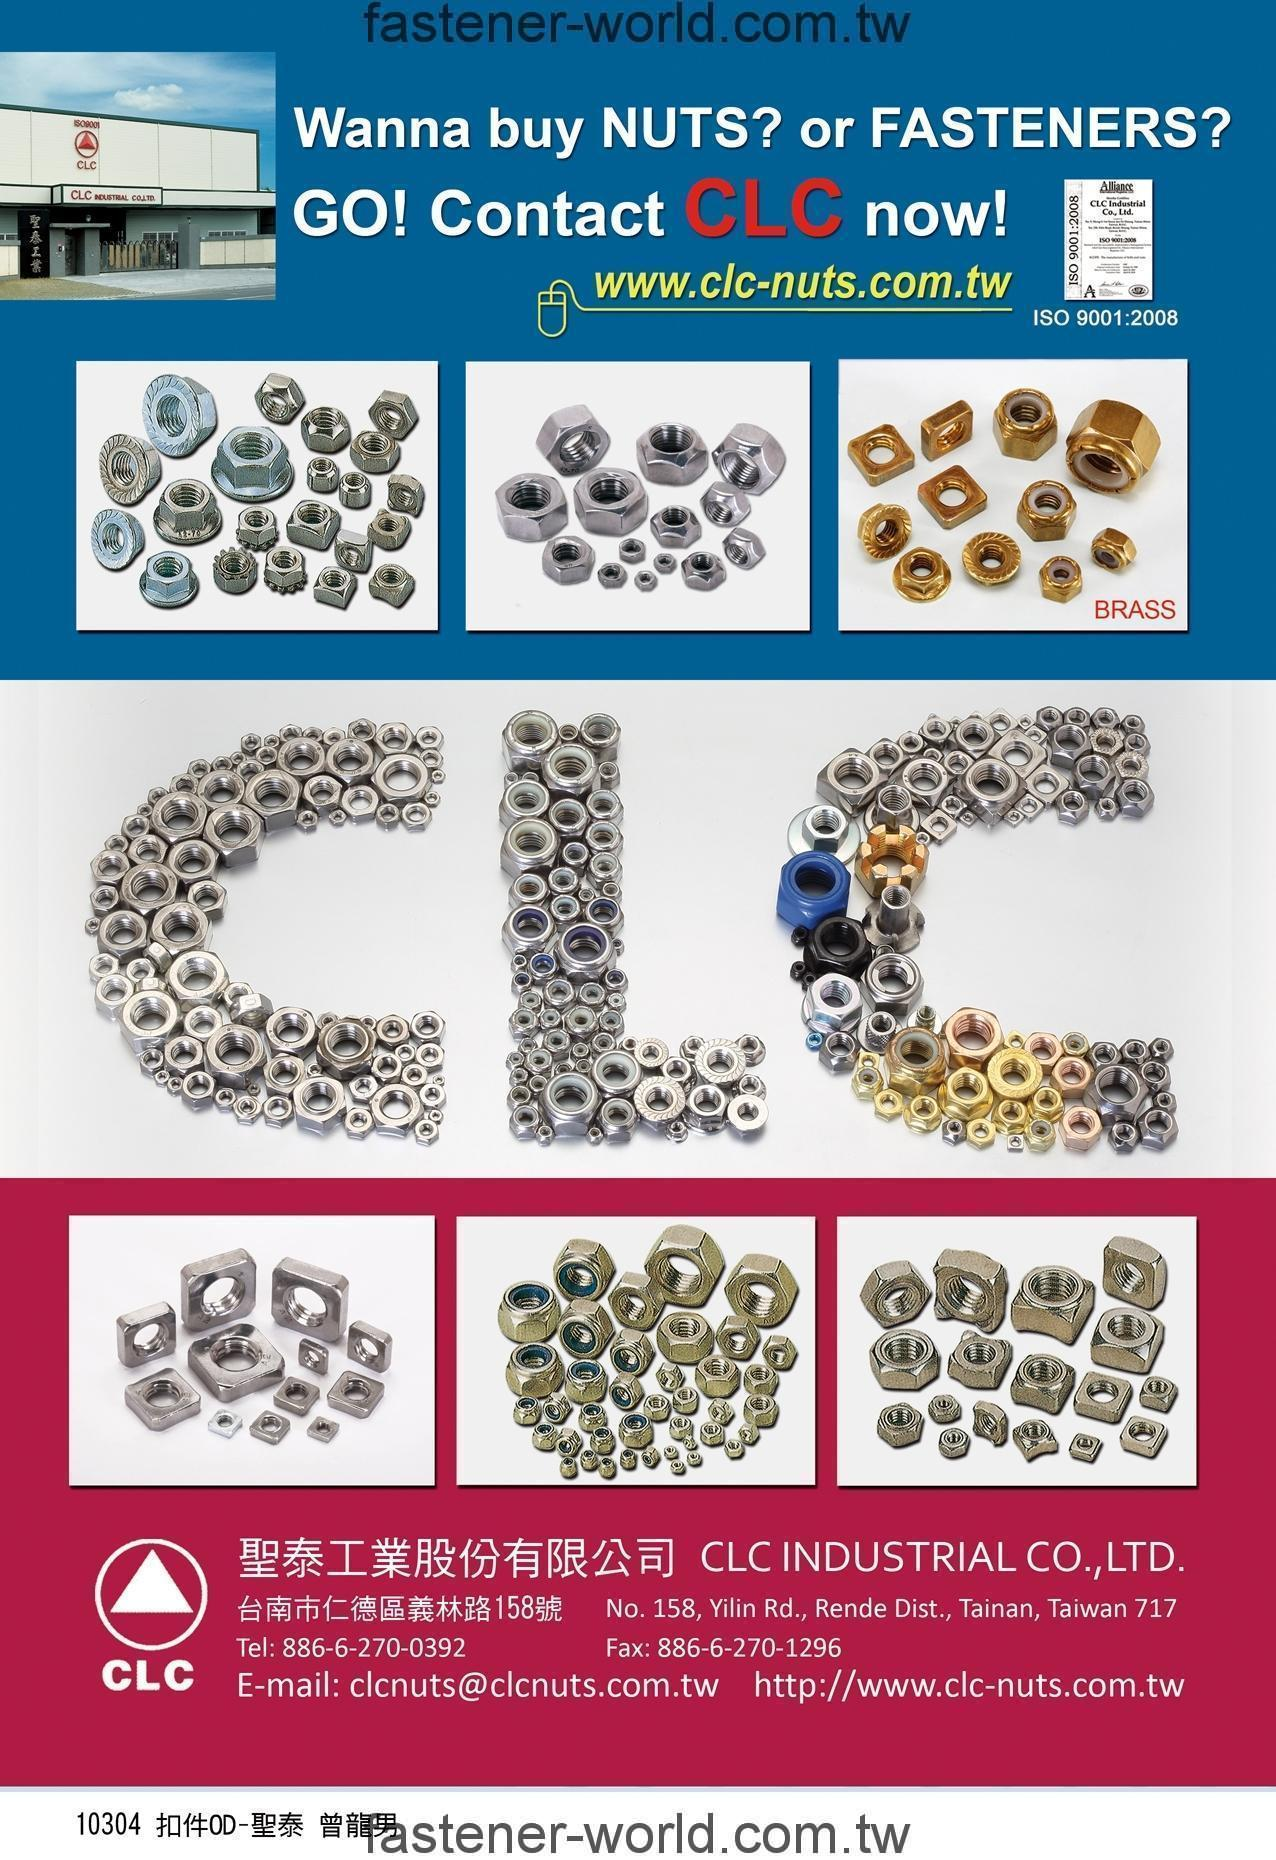 CLC INDUSTRIAL CO., LTD. Online Catalogues